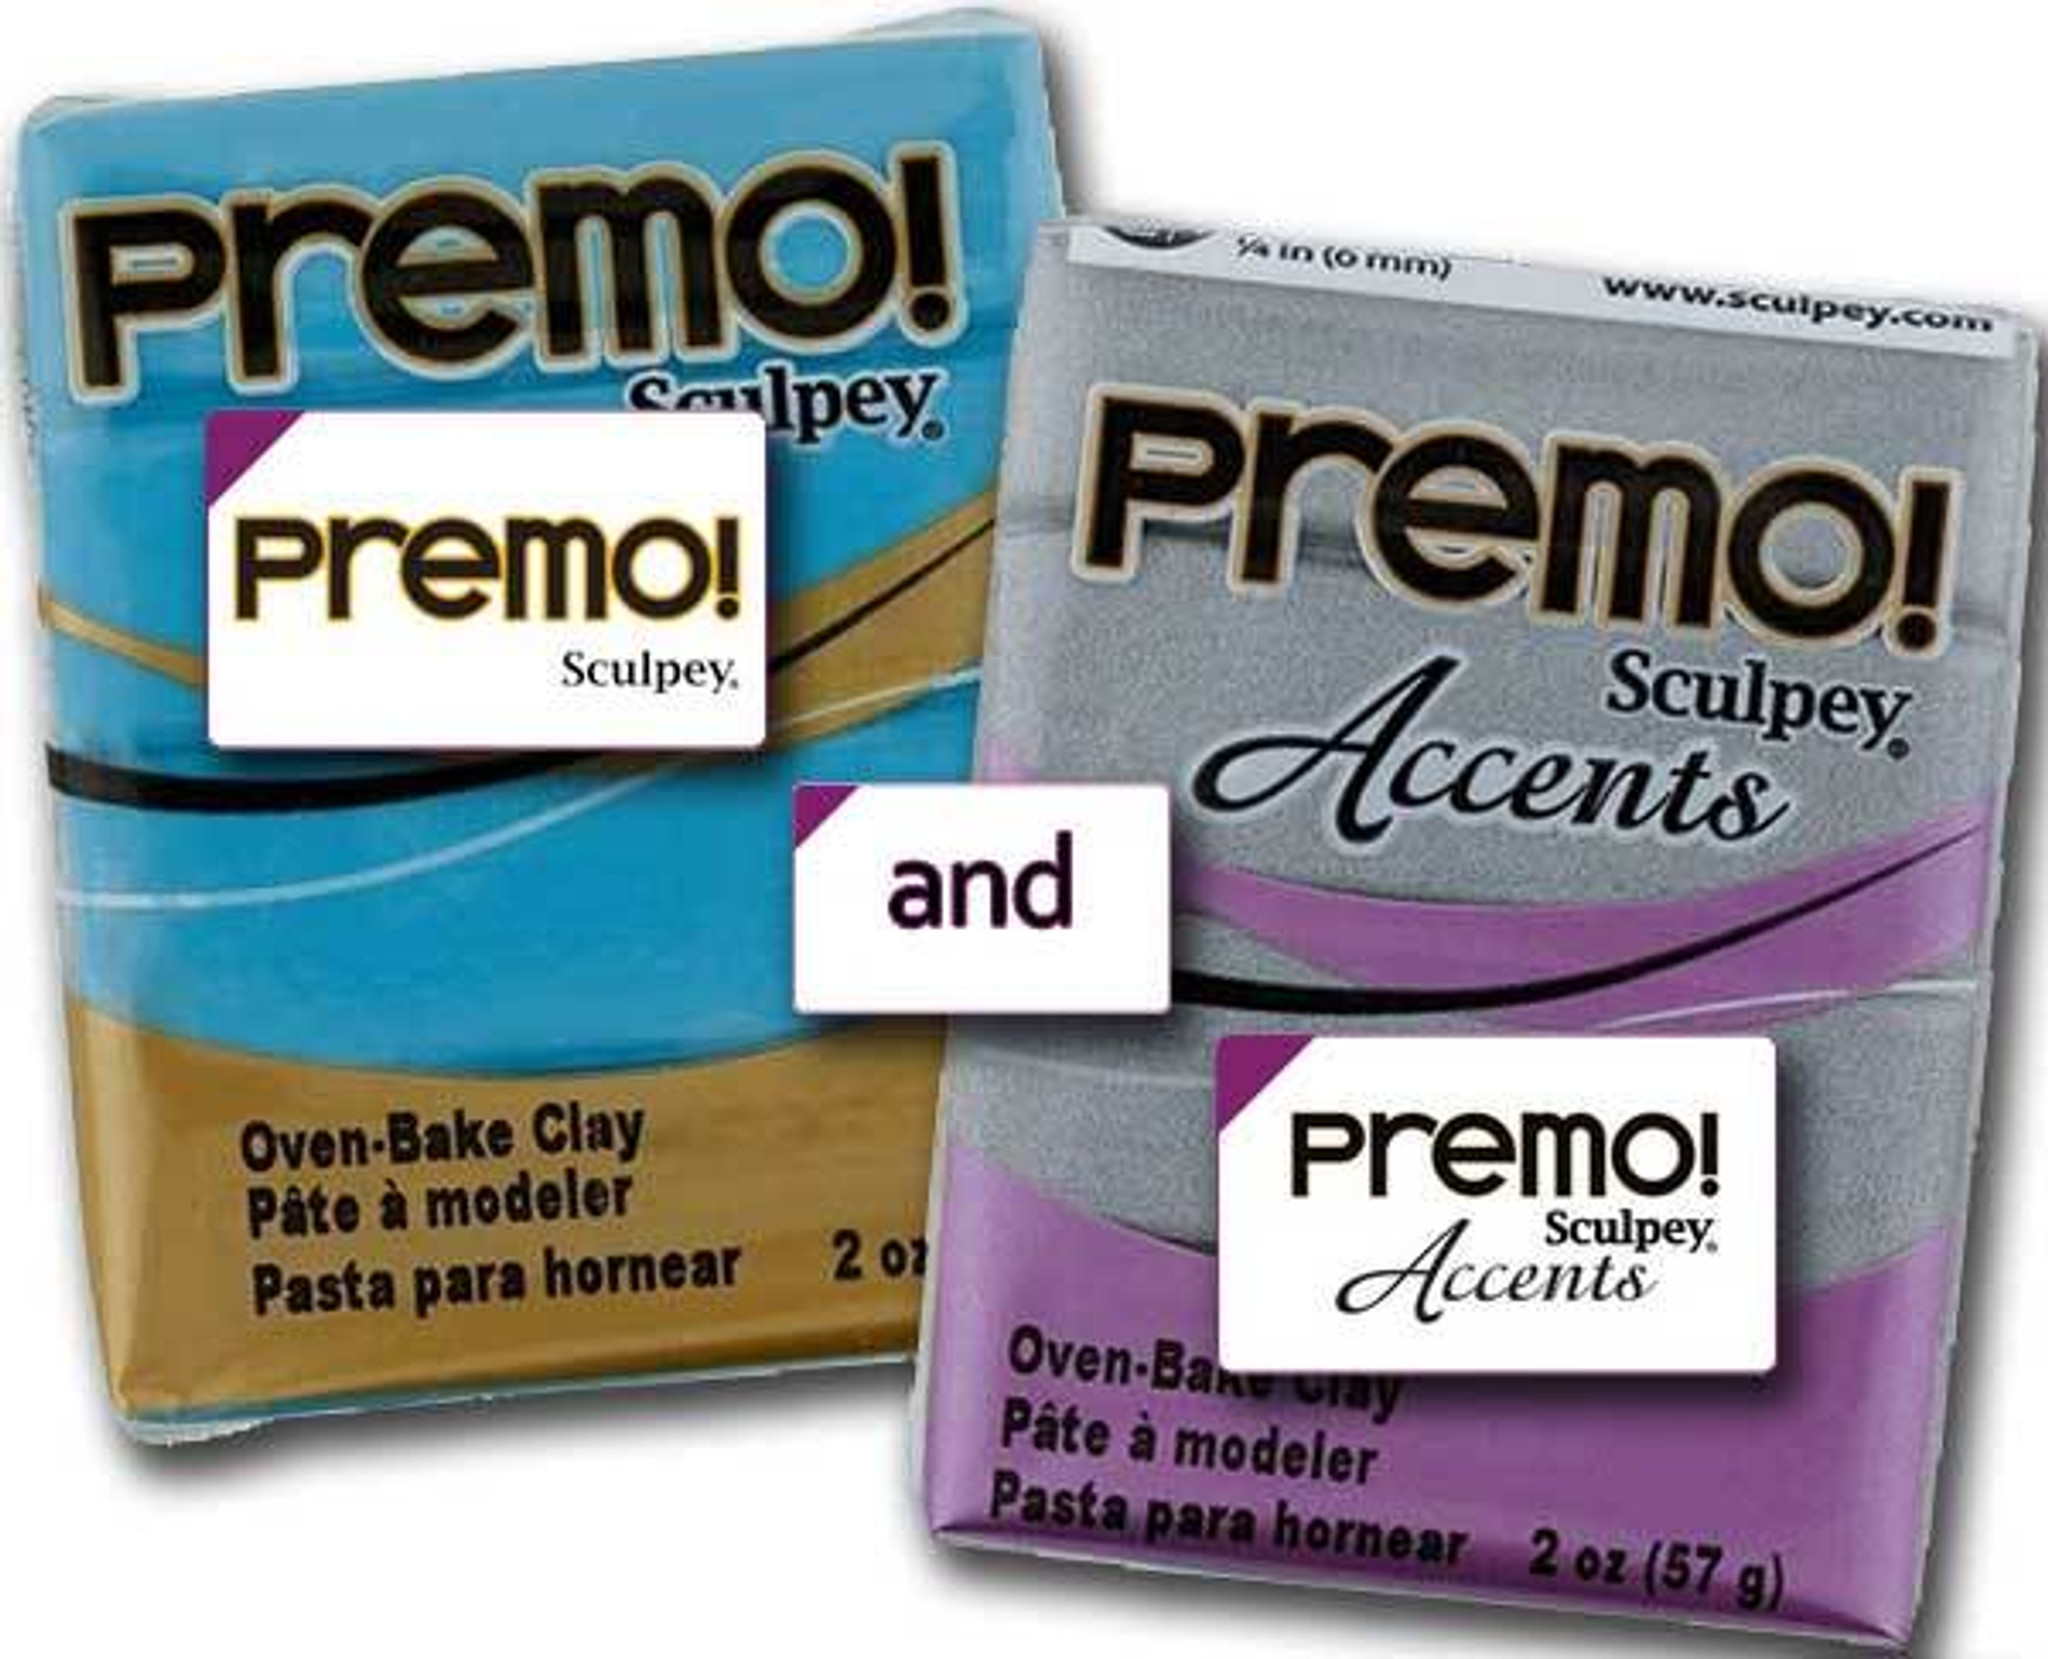 All Premo! and Accents